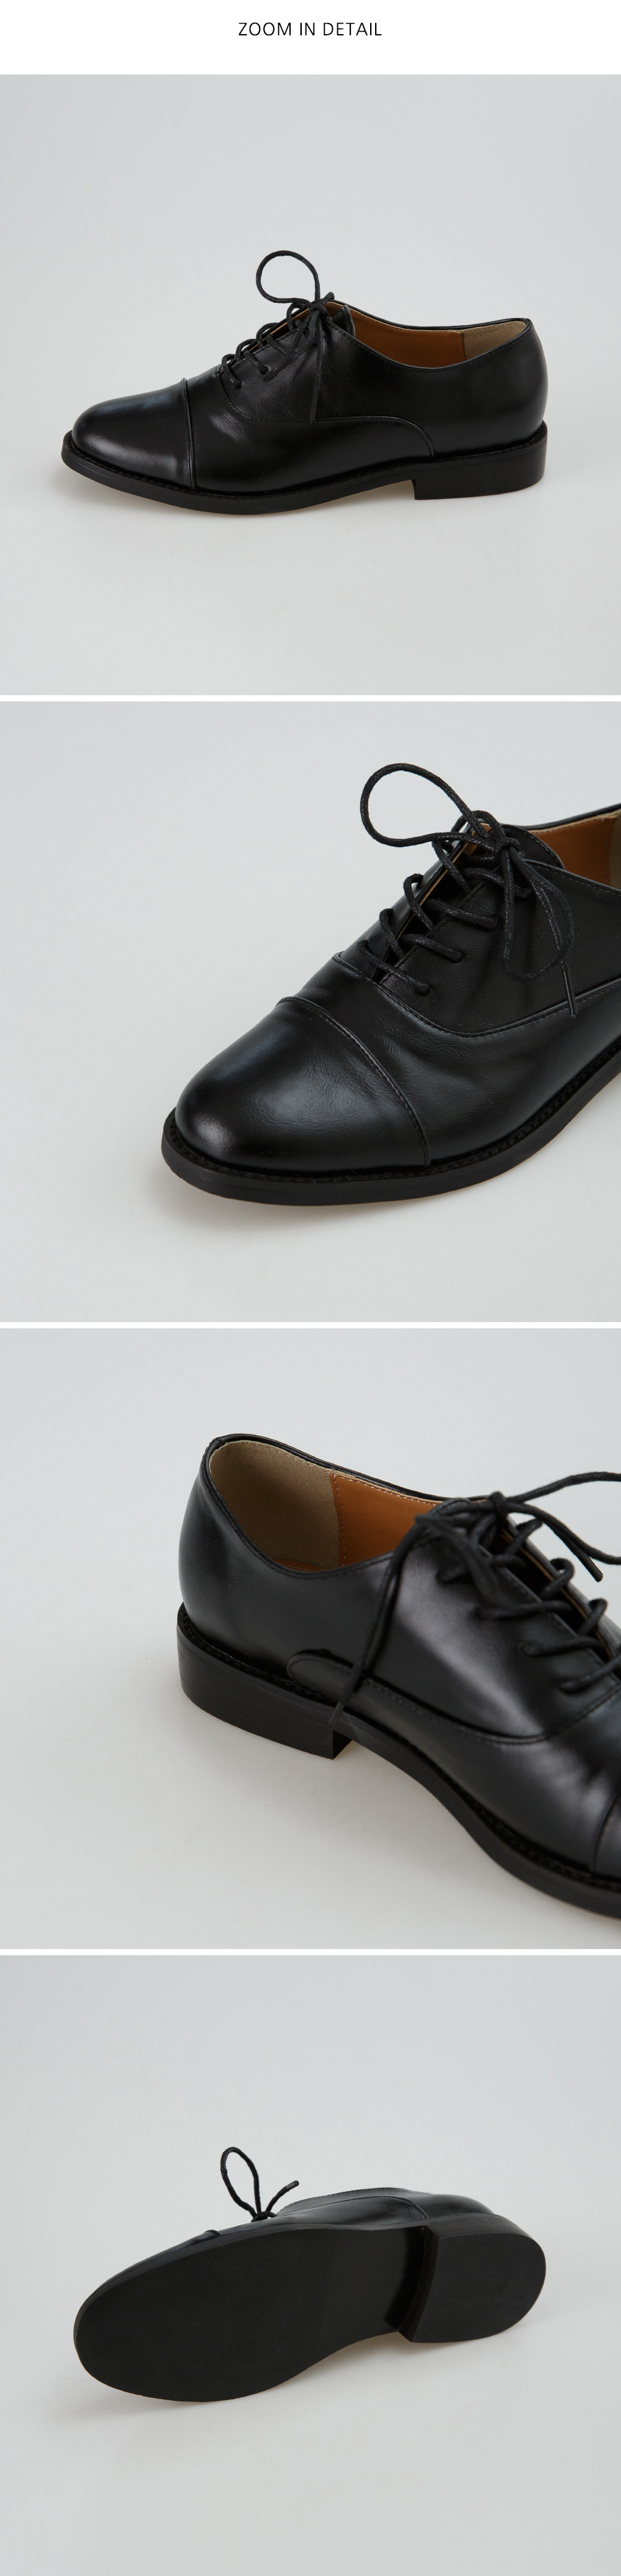 Daily Classic Line Loafers